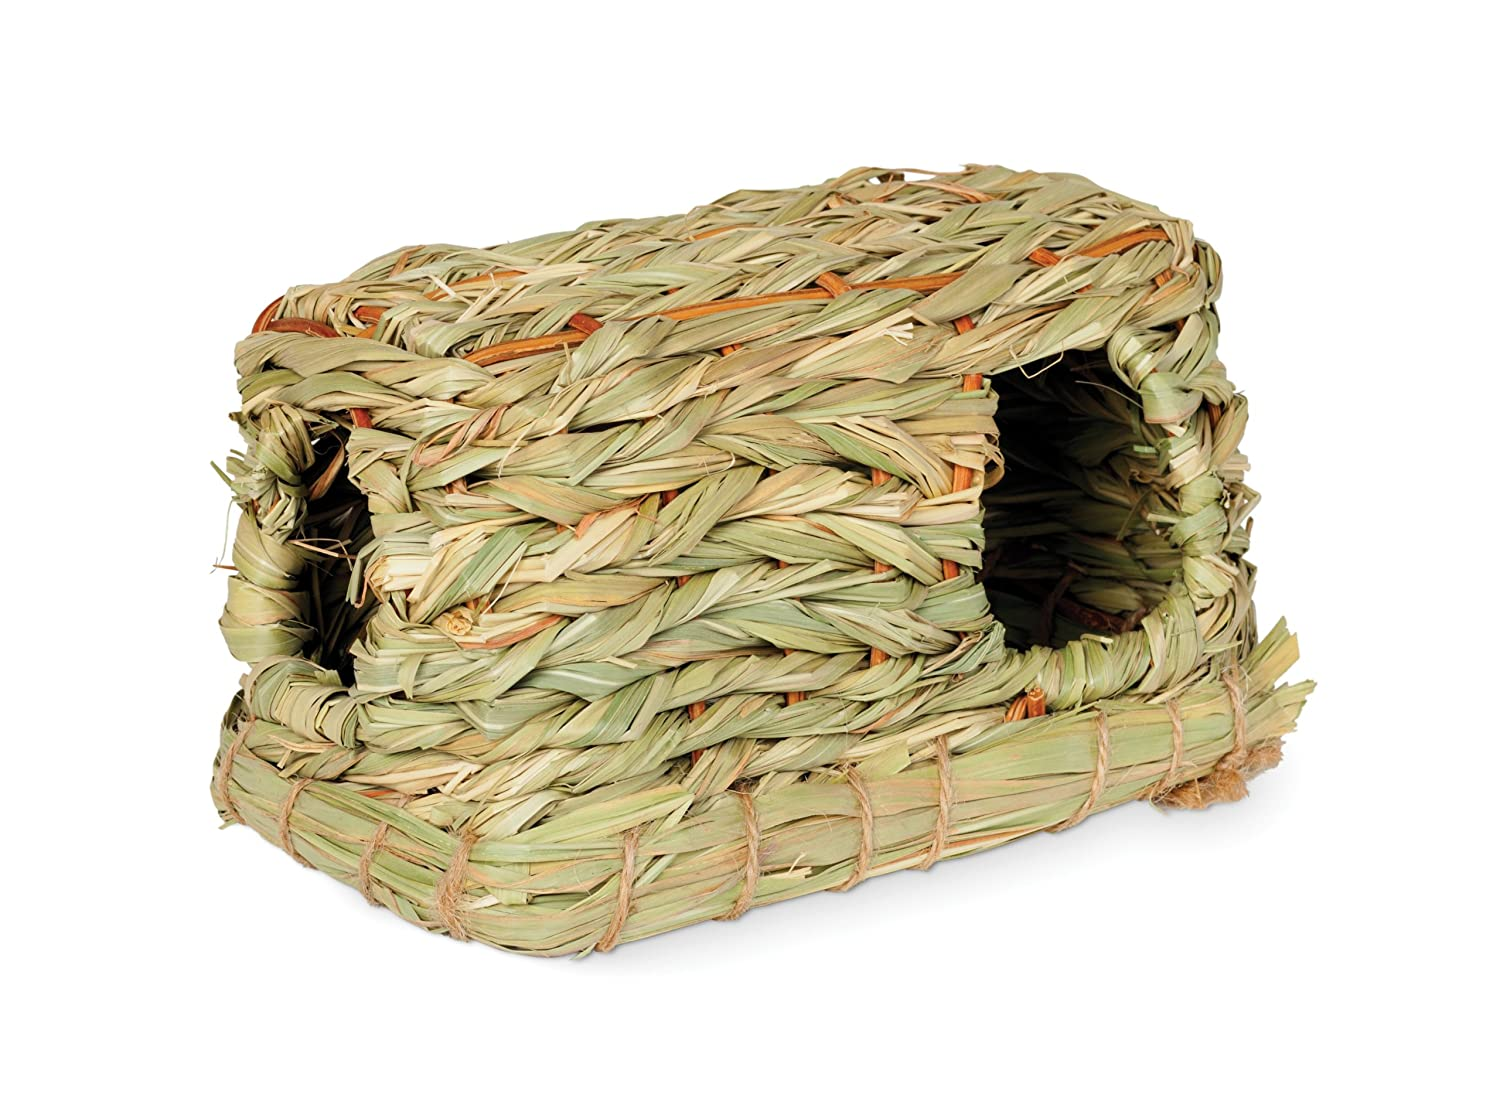 Prevue Hendryx 1096 Nature's Hideaway Grass Hut Toy, Small